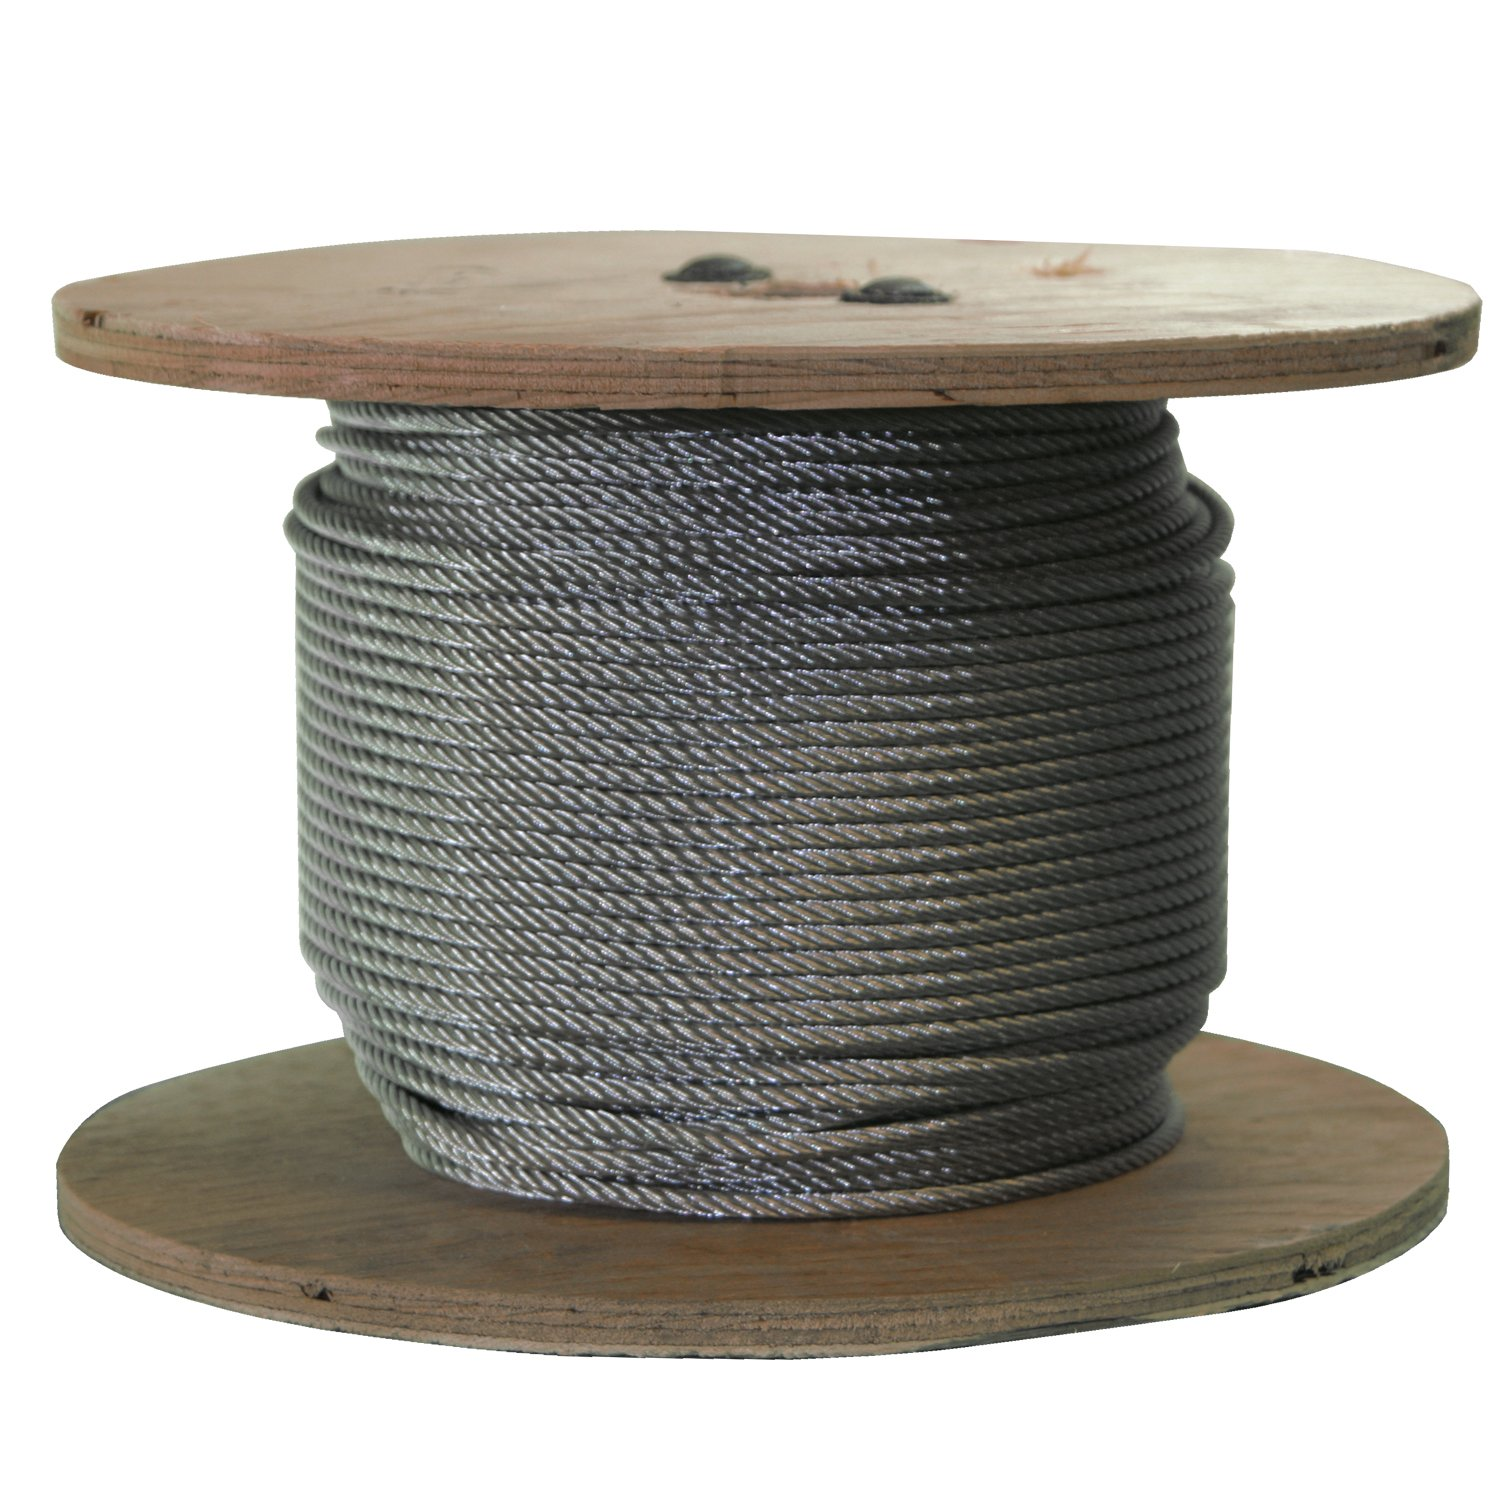 S316250C 250 Ft of Stainless Steel Wire Rope 3/16 inch